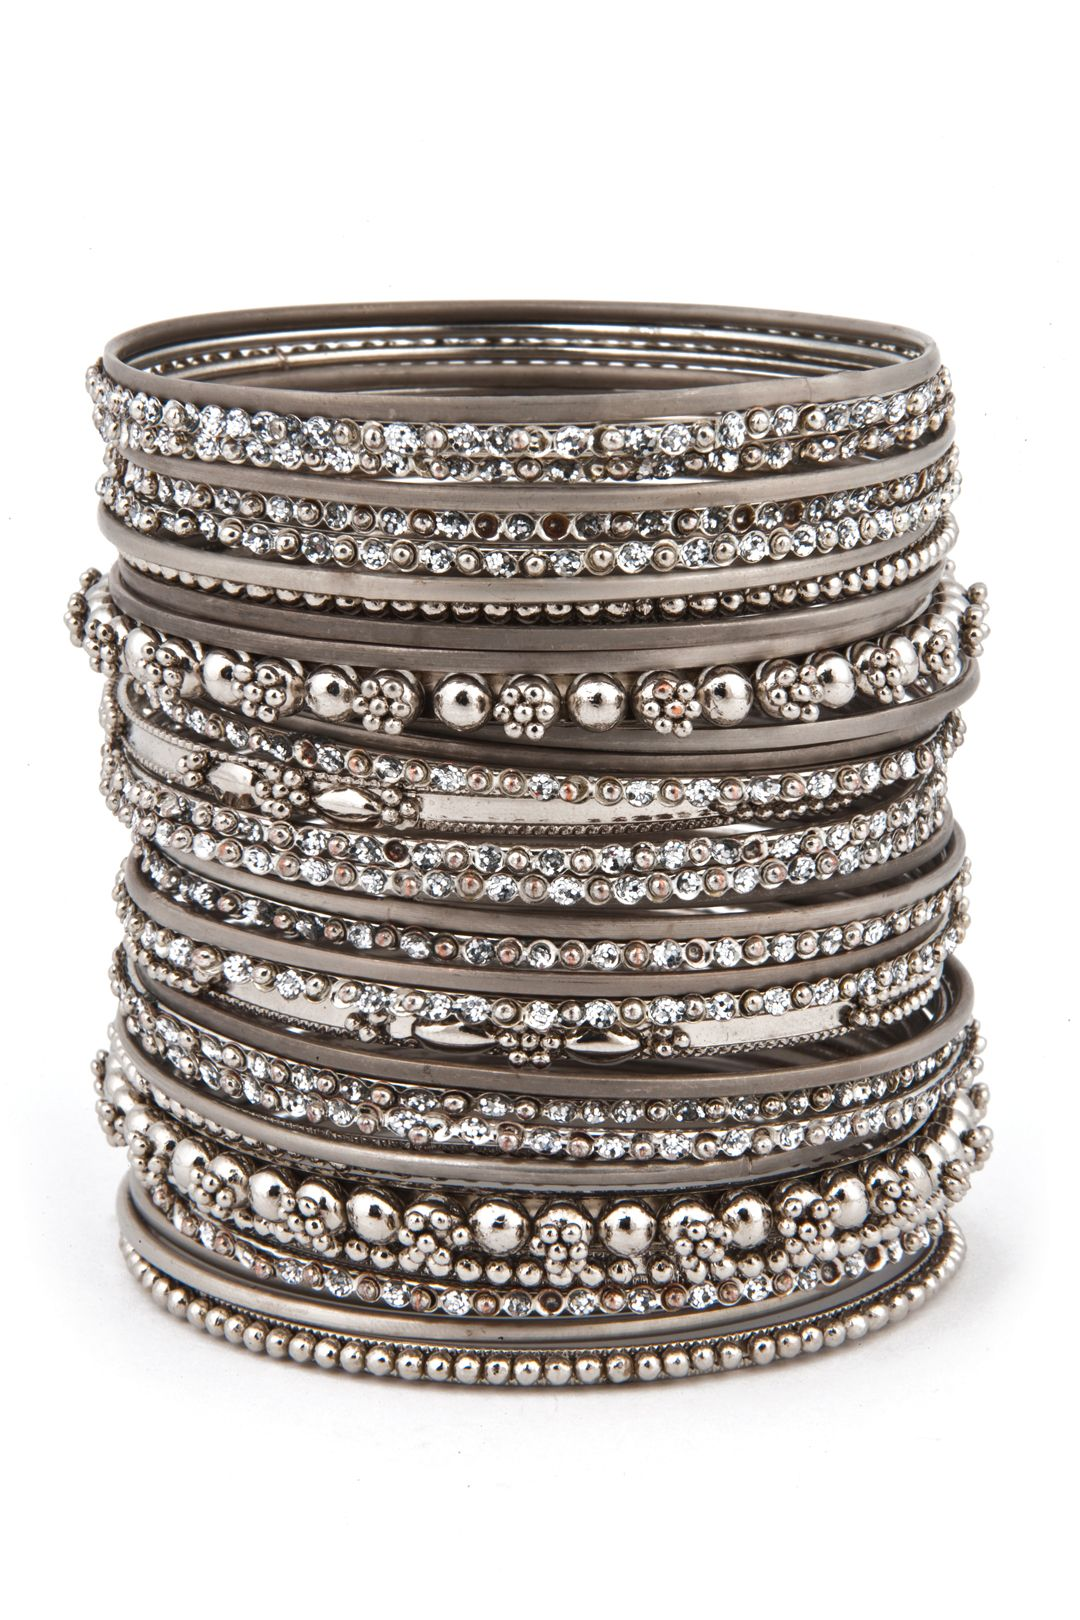 The More Merrier Bangle Set This Enormous Stack Of Bangles Will Make You Look Like Paid A Pretty Penny